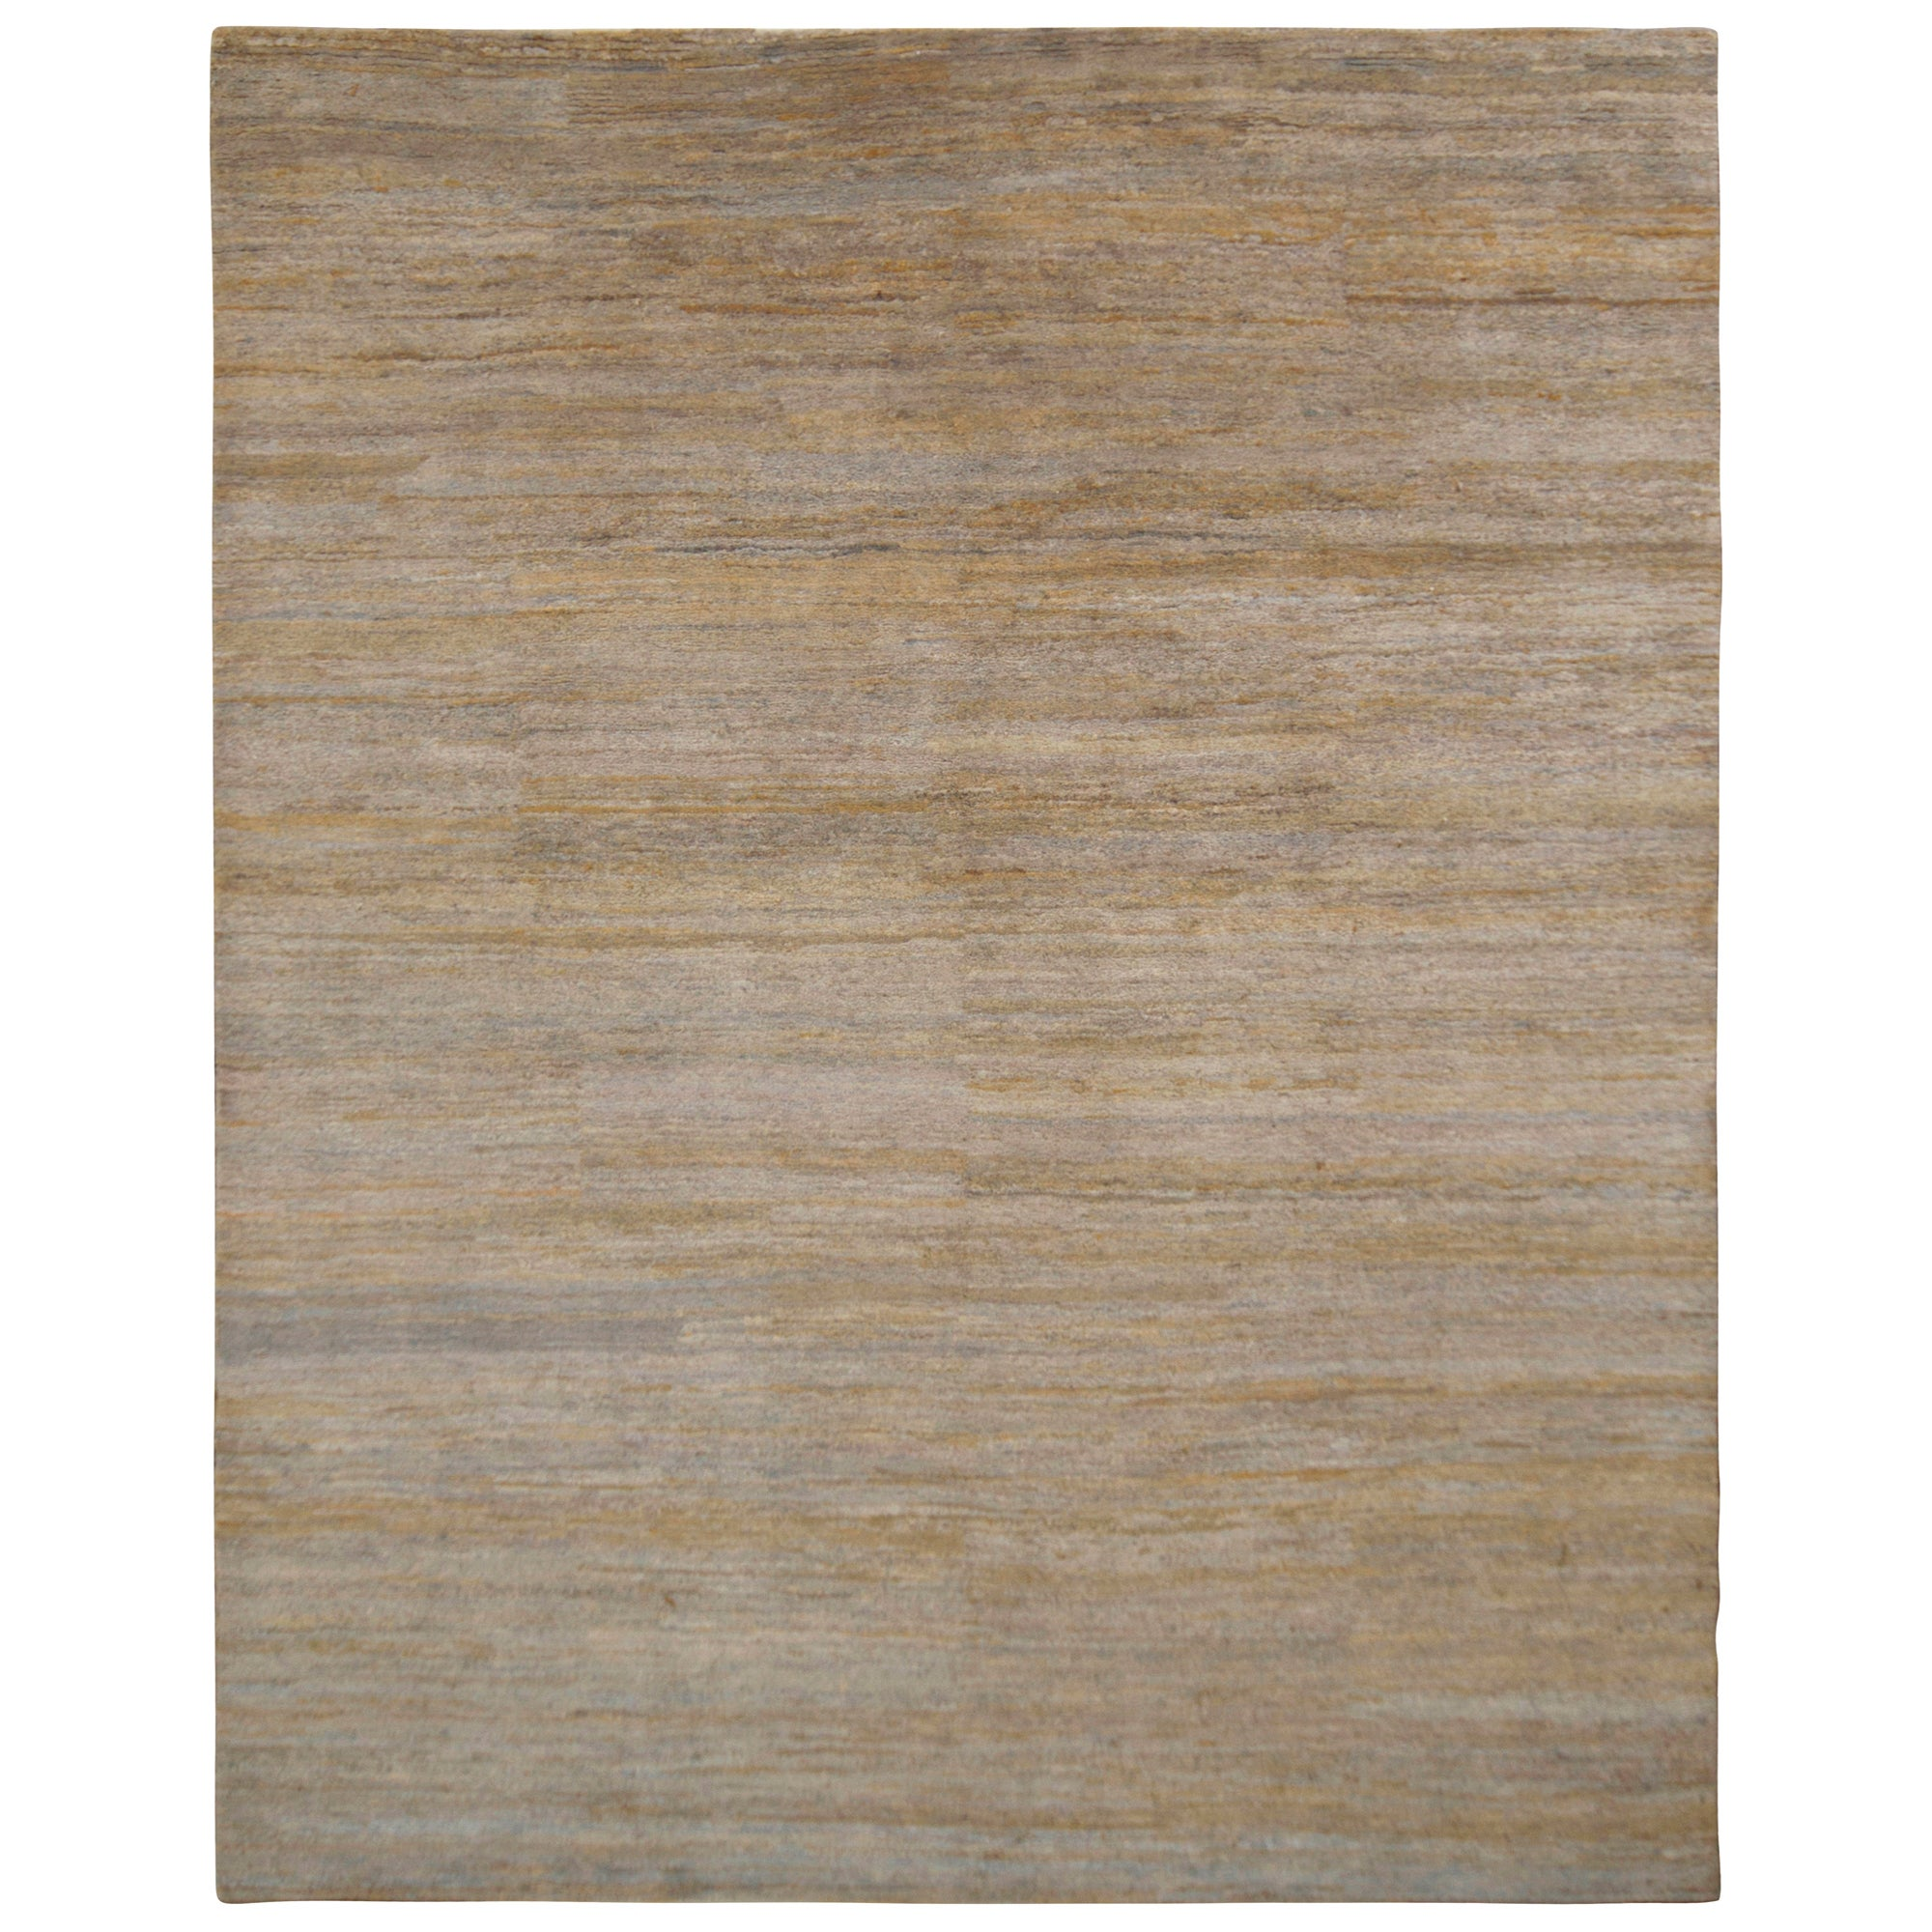 Handmade Contemporary Rug Gray Beige Striped Pattern by Rug & Kilim